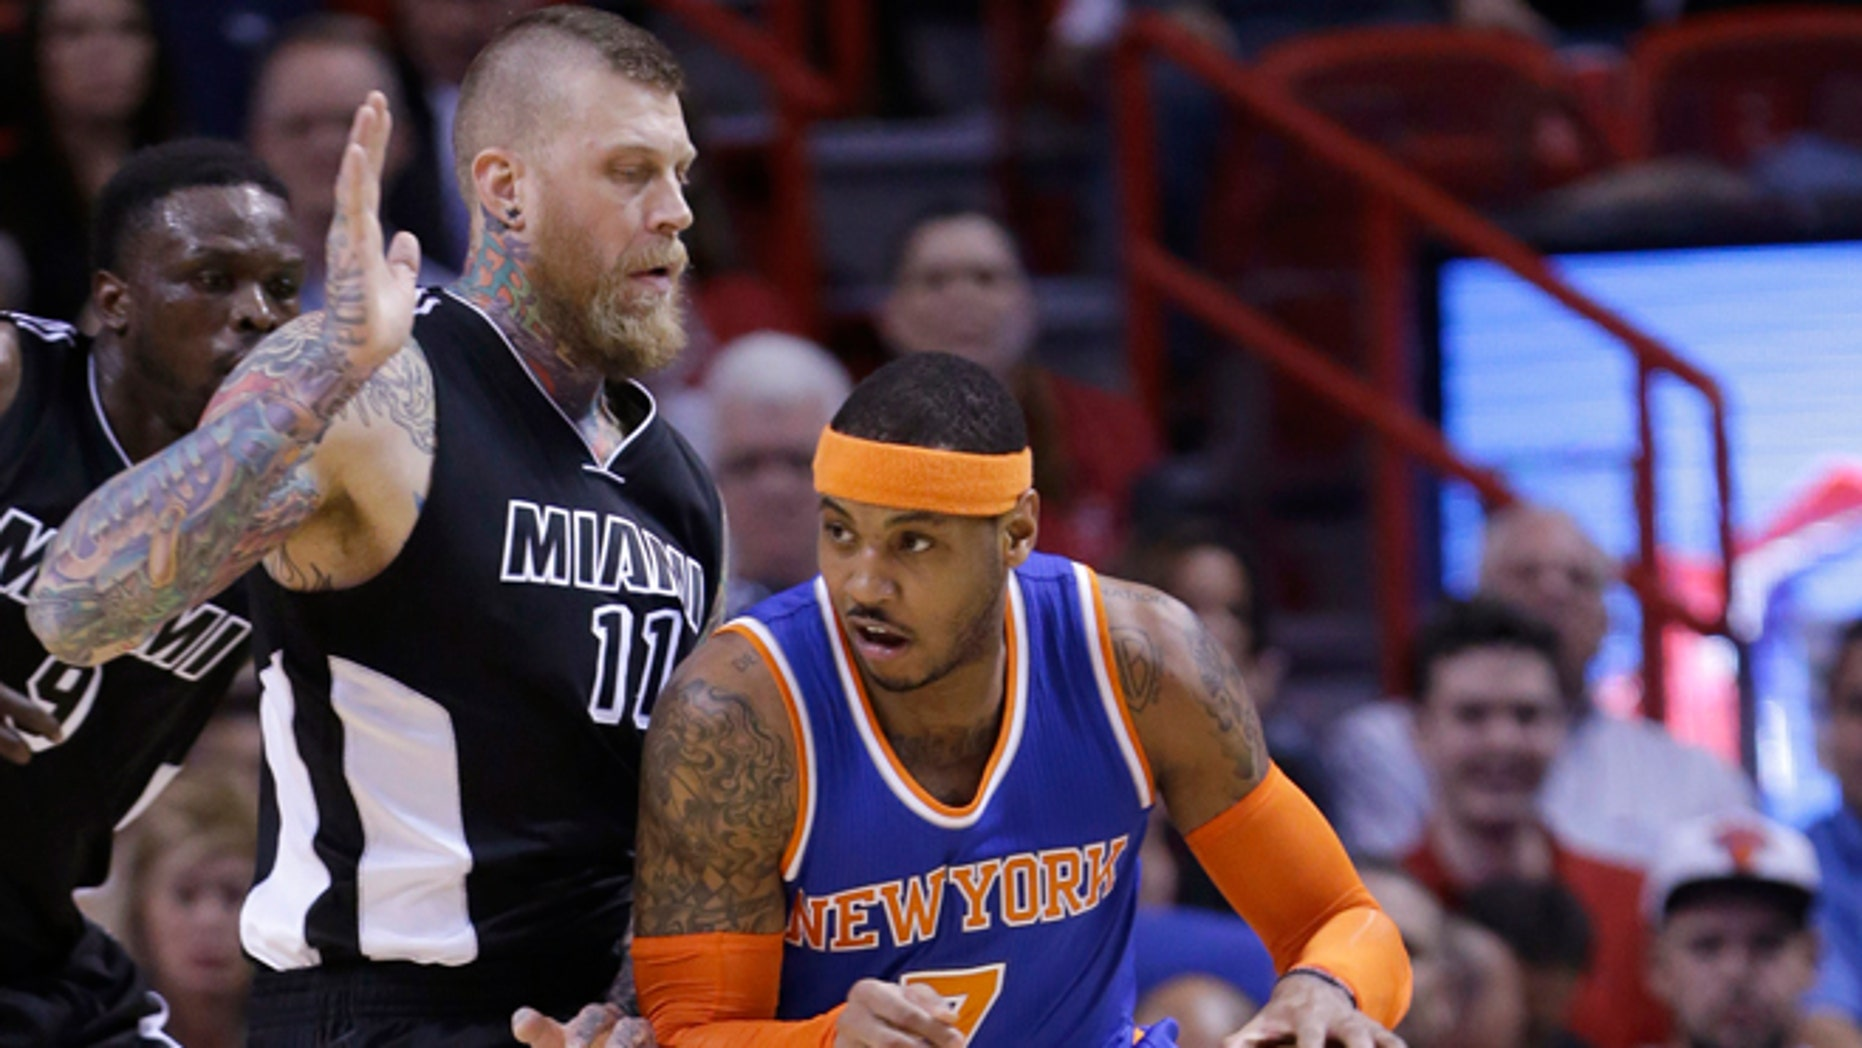 New York Knicks forward Carmelo Anthony (7) drives around Miami Heat forward Chris Andersen (11) during the first half of an NBA basketball game, Monday, Feb. 9, 2015, in Miami. (AP Photo/Wilfredo Lee),